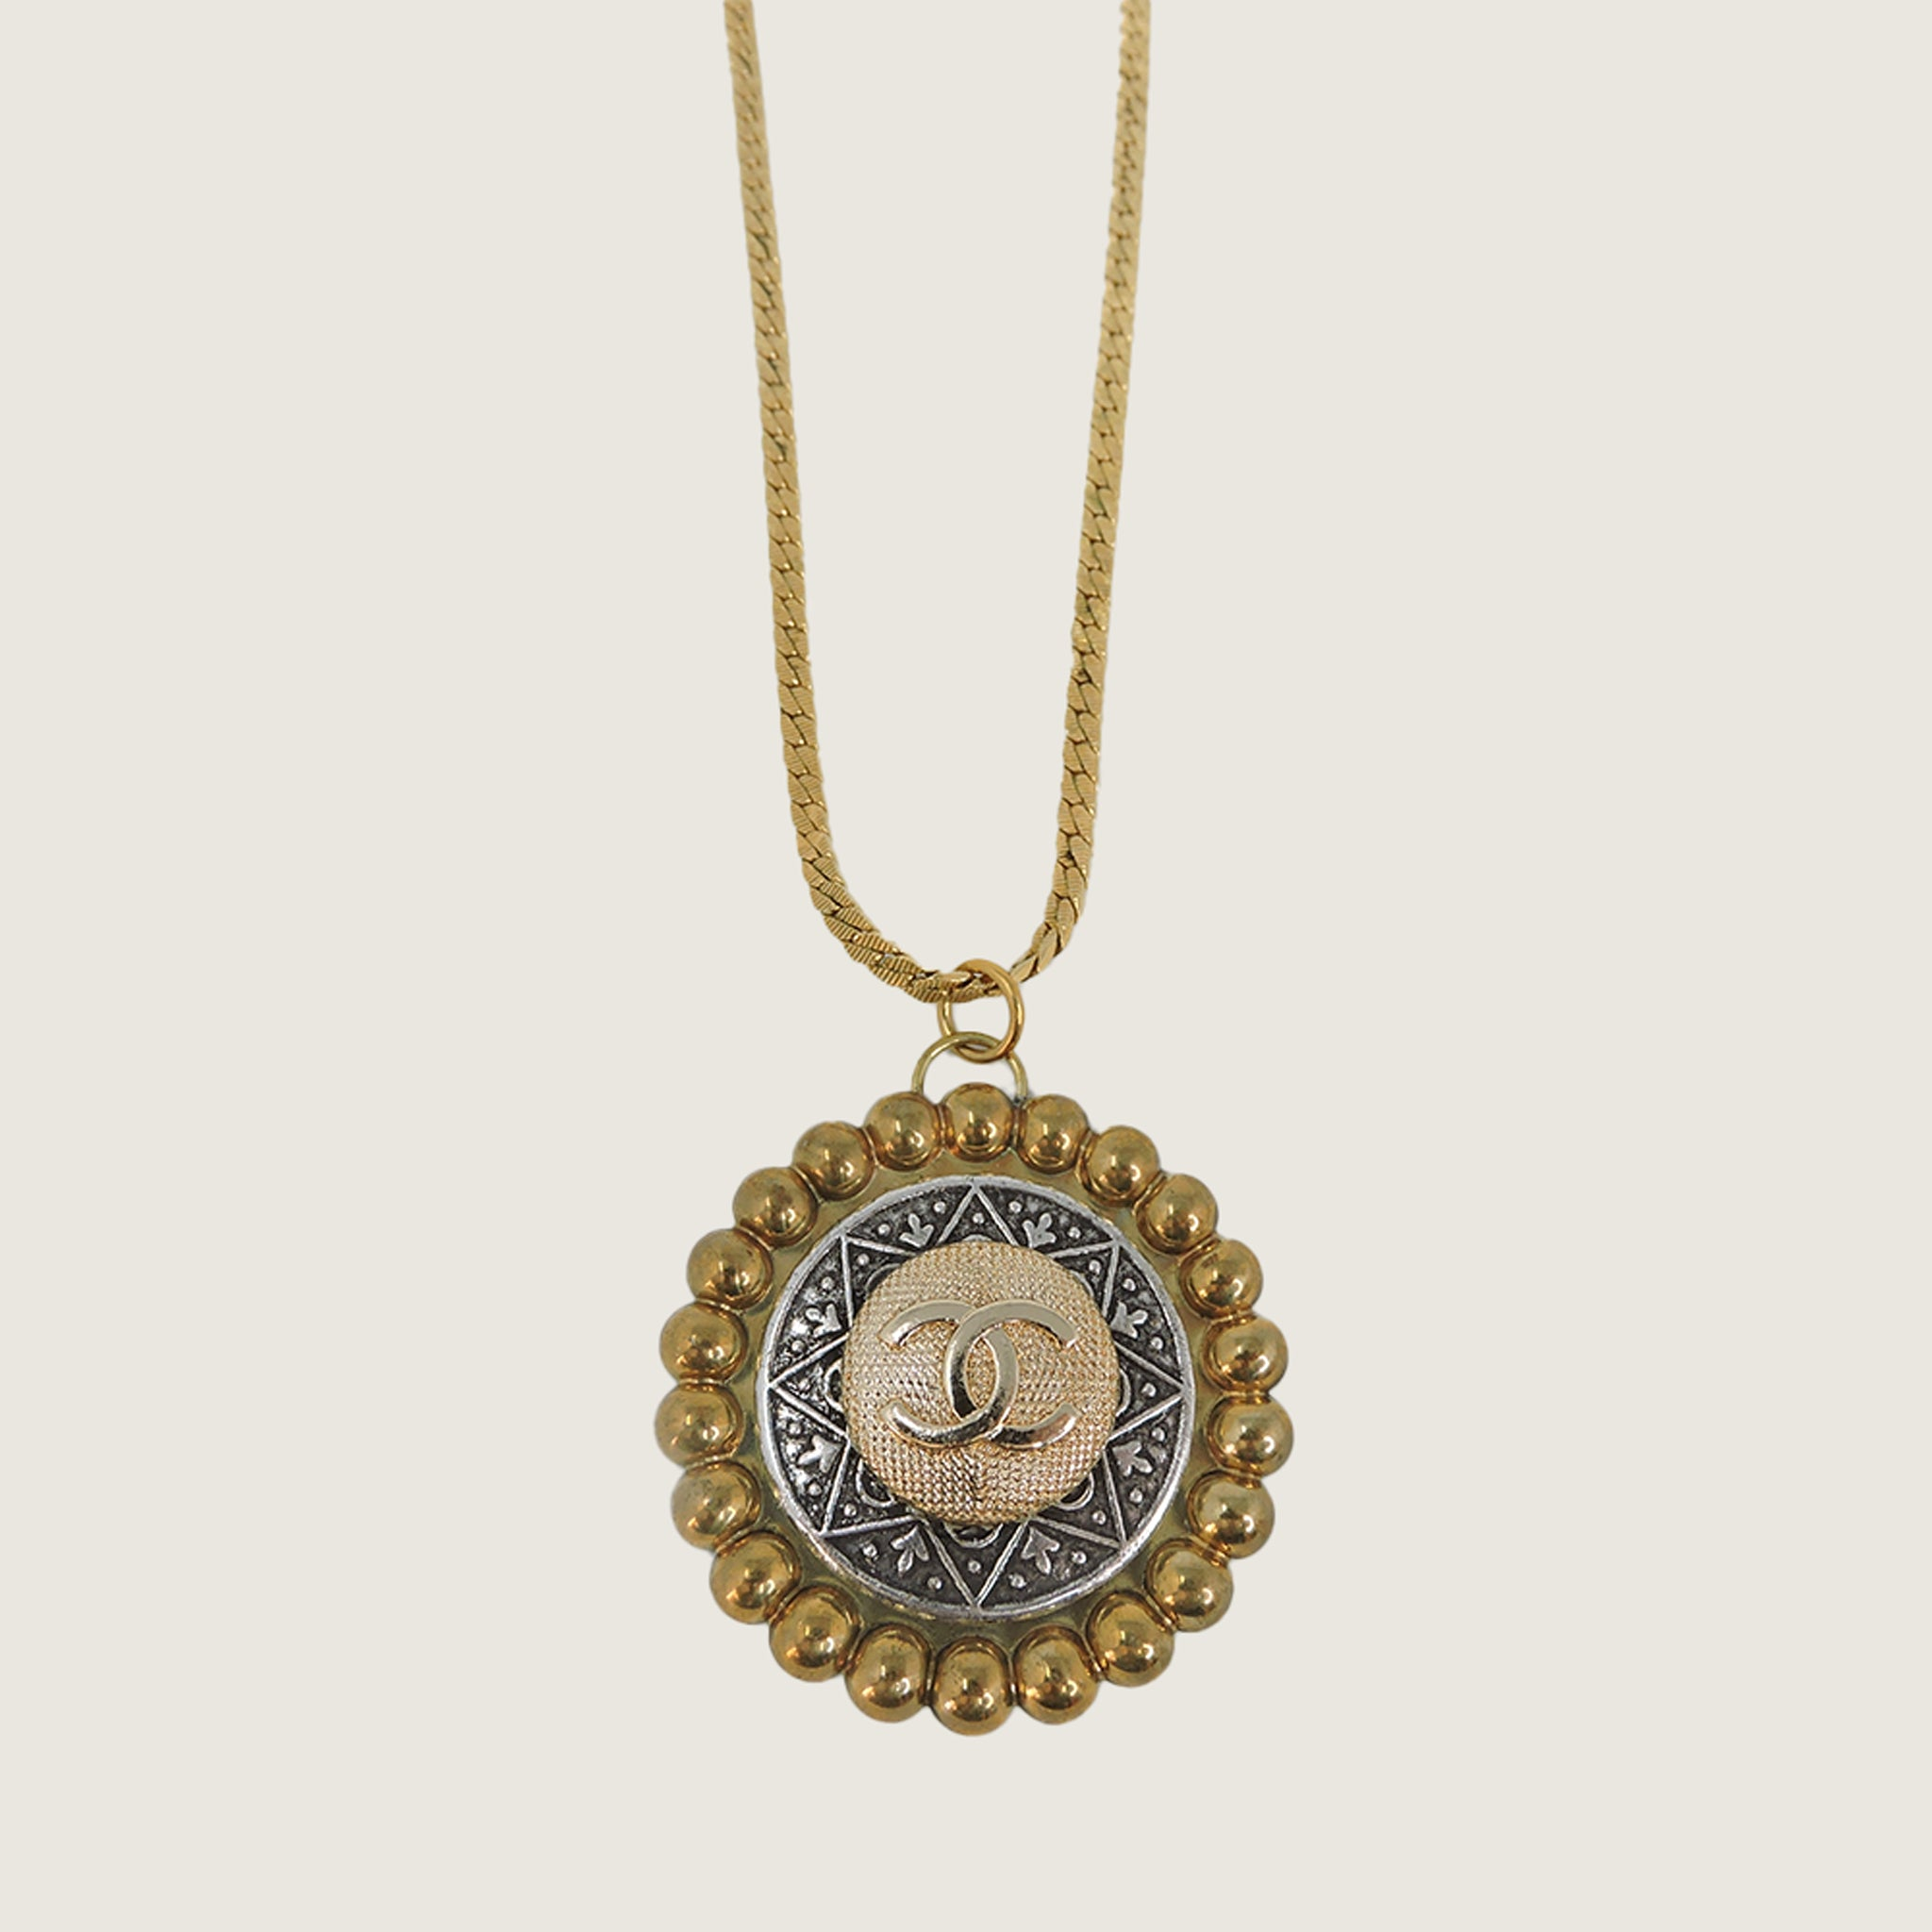 Vintage Chanel Starburst Necklace - Blackbird General Store